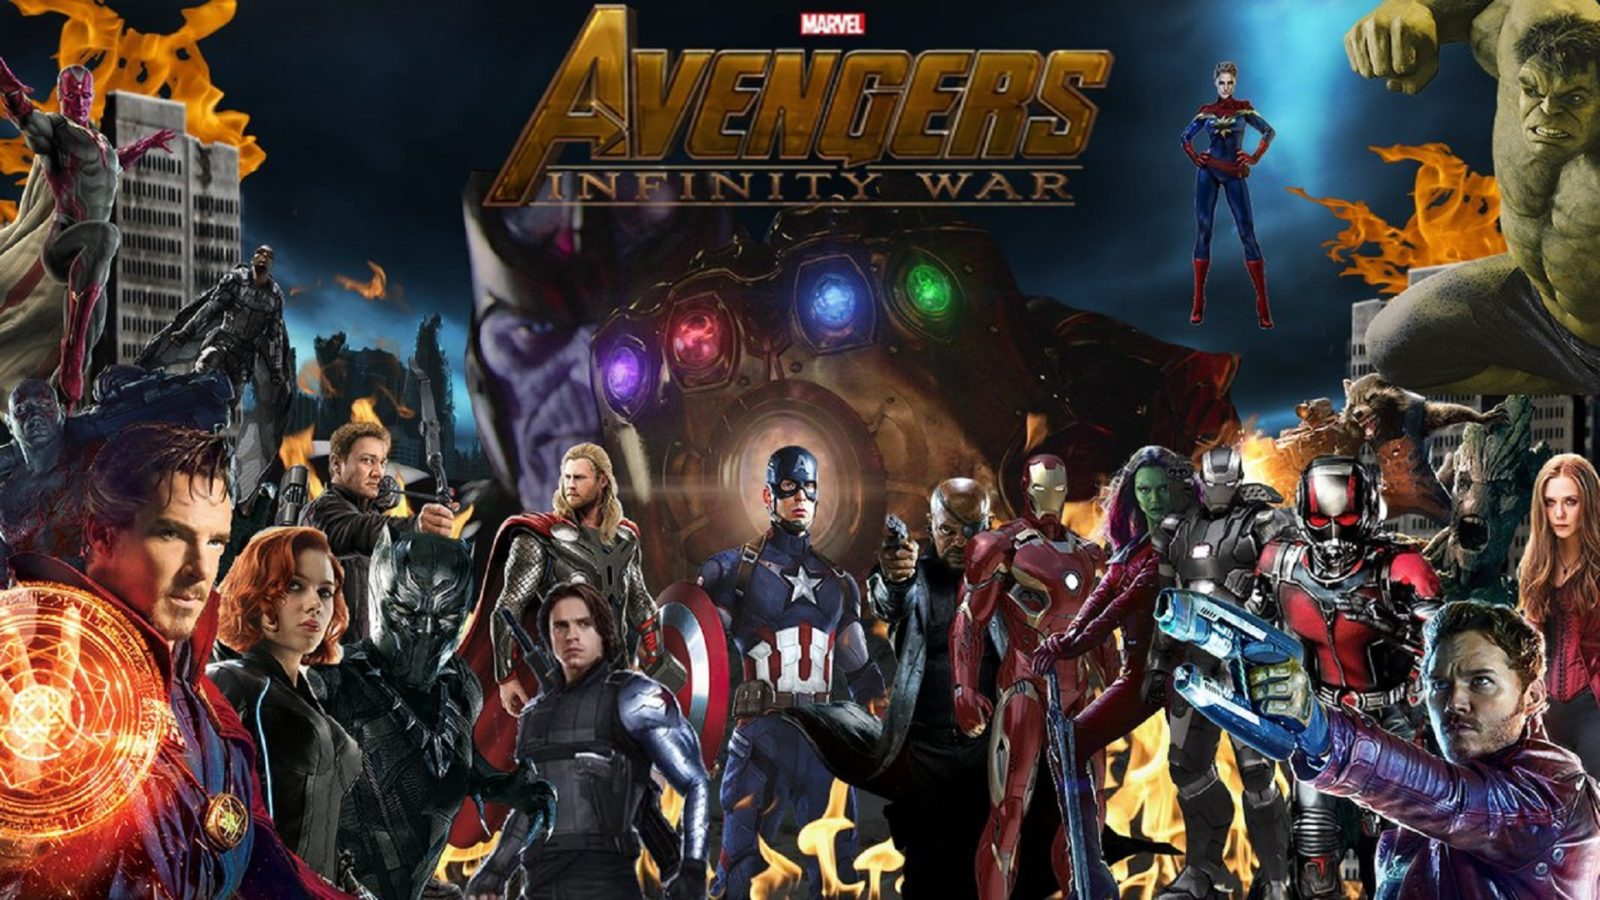 Marvel moves up 'Avengers: Infinity War' release date